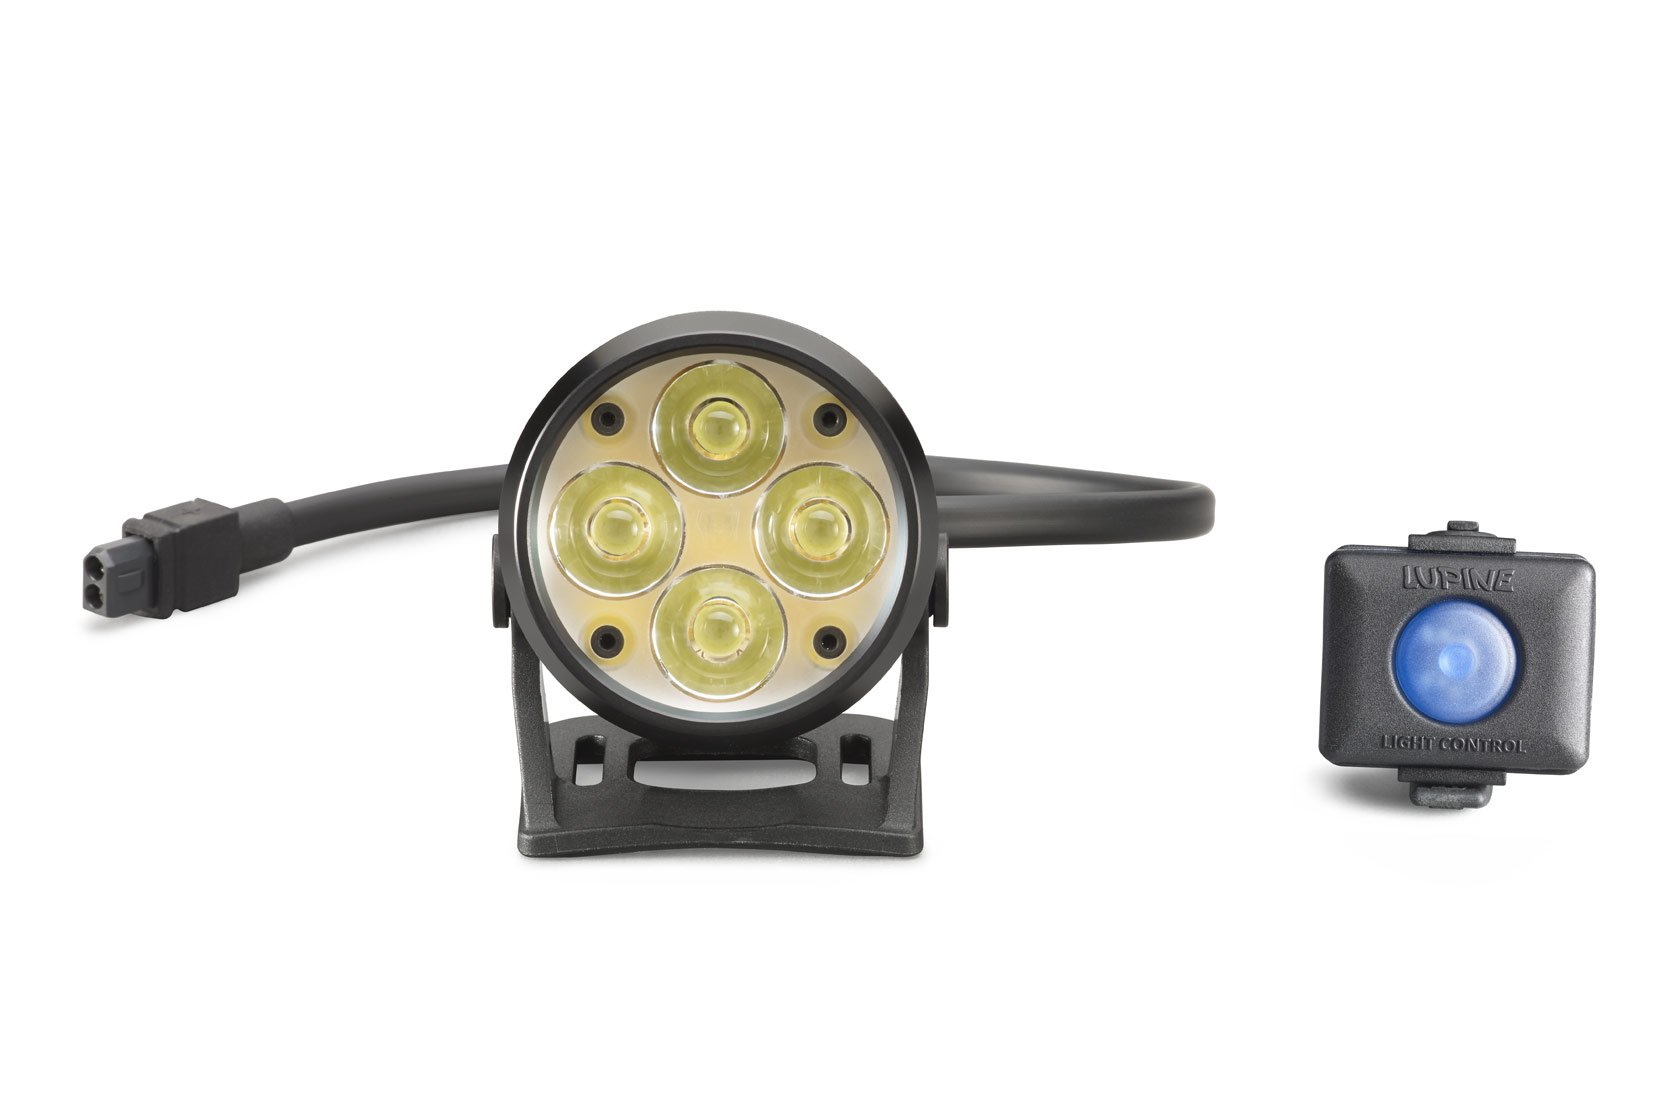 Lupine Lighting Systems Wilma RX 14 HD Headlamp, 3200 Lumens, LED, Bluetooth Control, Heavy Duty Headband, Rechargeable 13.2 Ah SmartCore Lithium-ion Battery by Lupine Lighting Systems (Image #2)